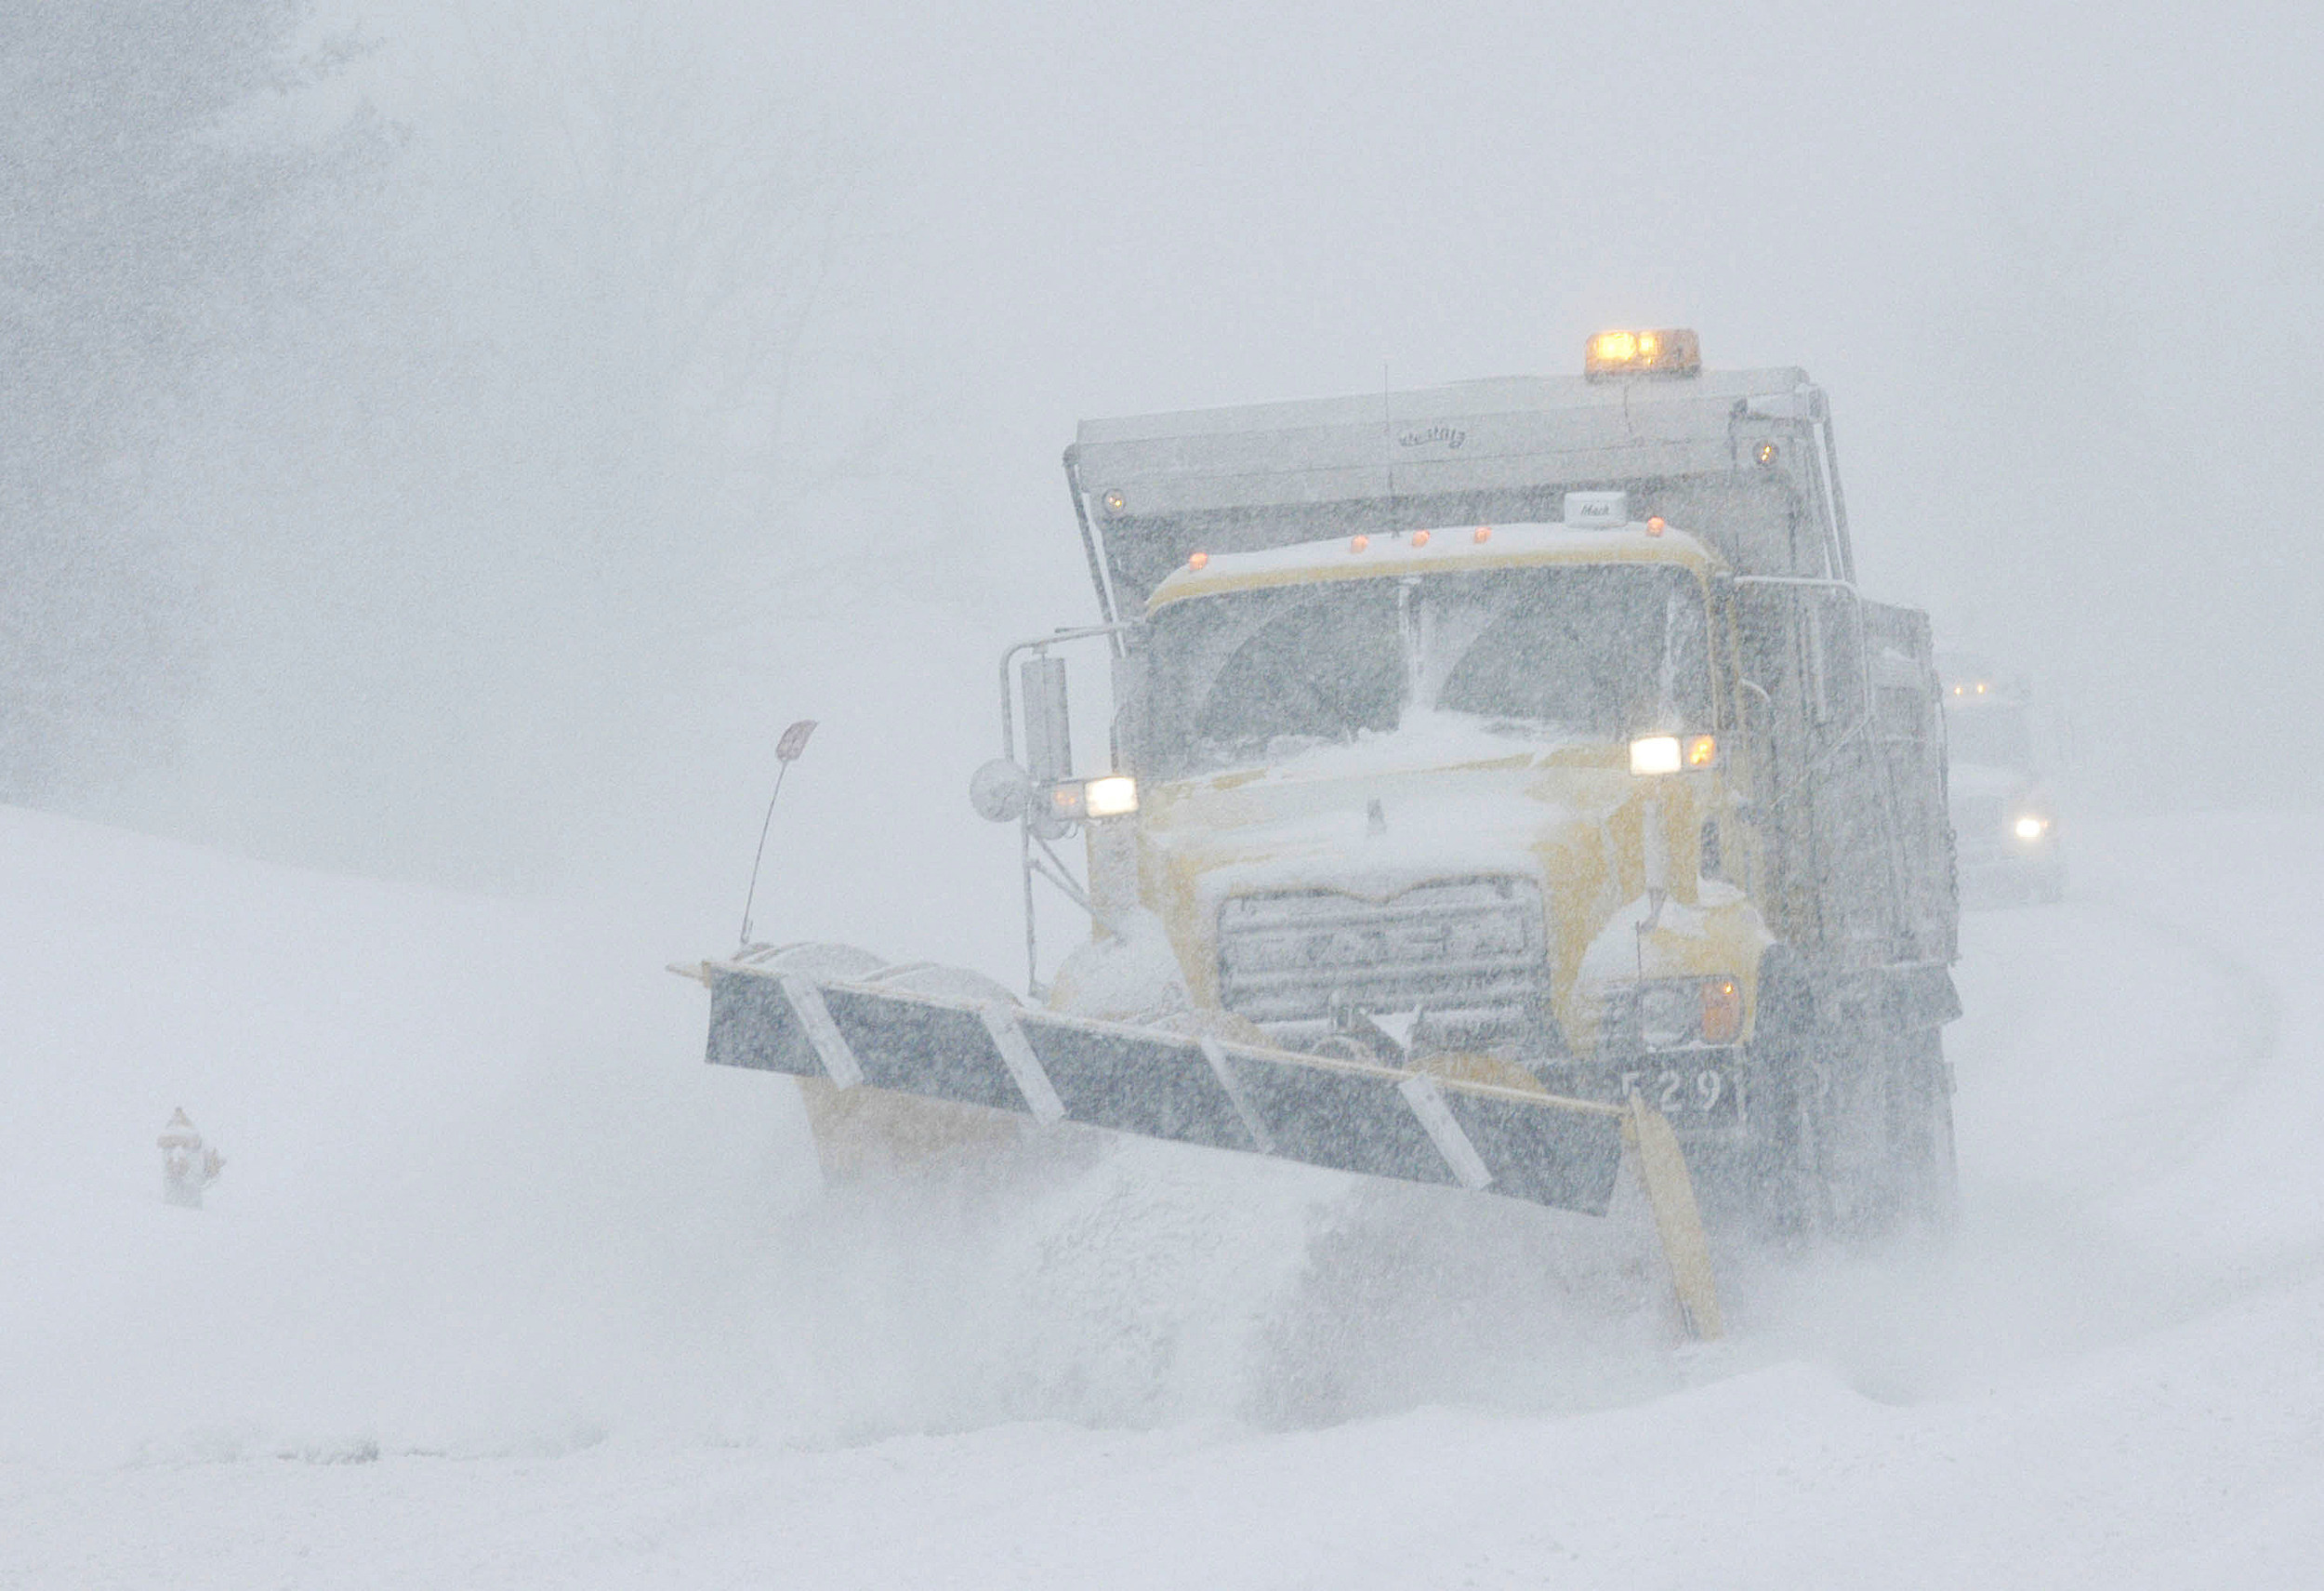 National Weather Service Says the Chances are Improving for Weekend Snow